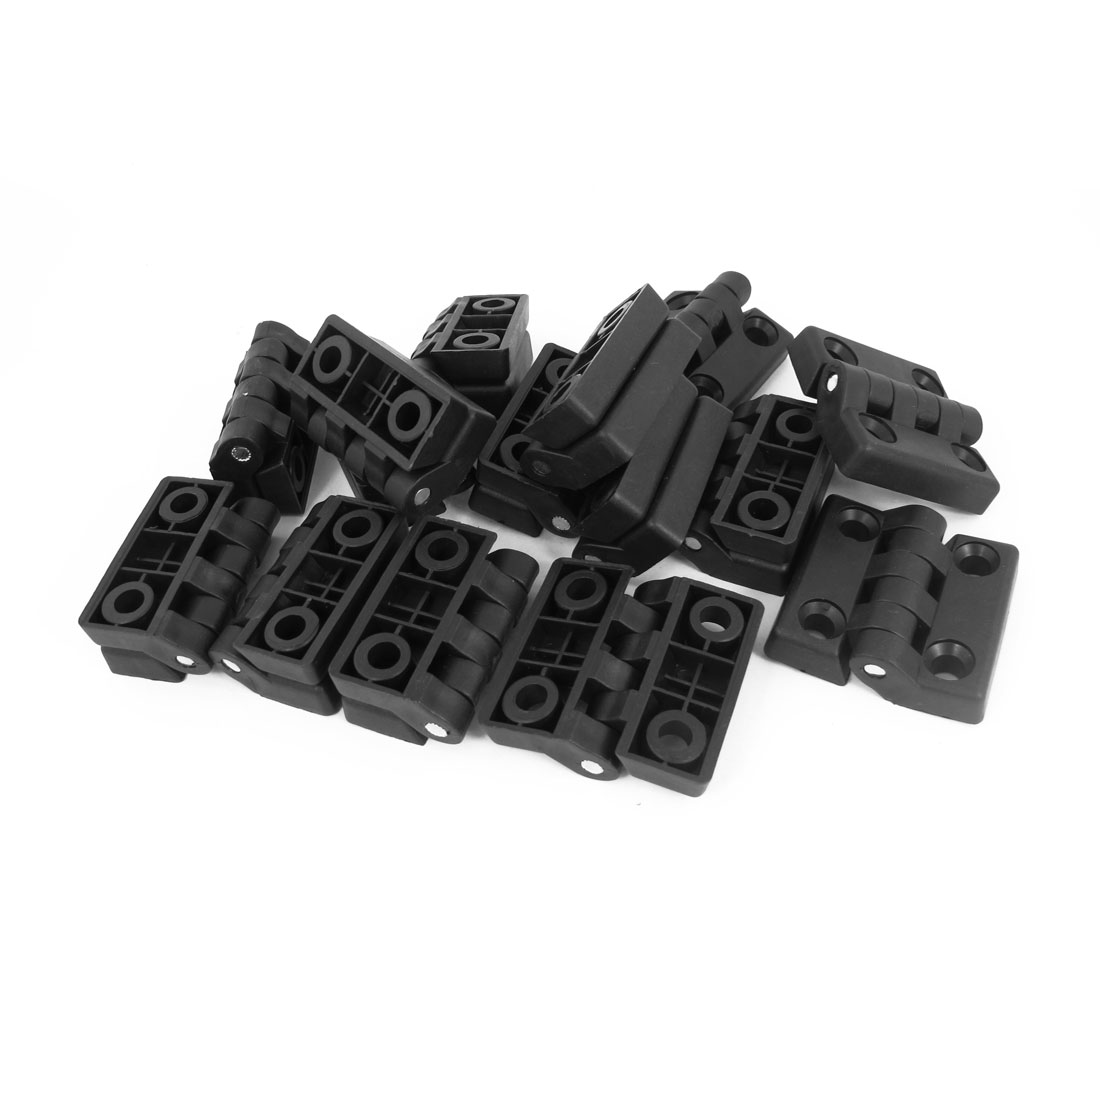 48mmx48mm Furniture Closet Cabinet Door Butt Plastic Hinge Black 15pcs